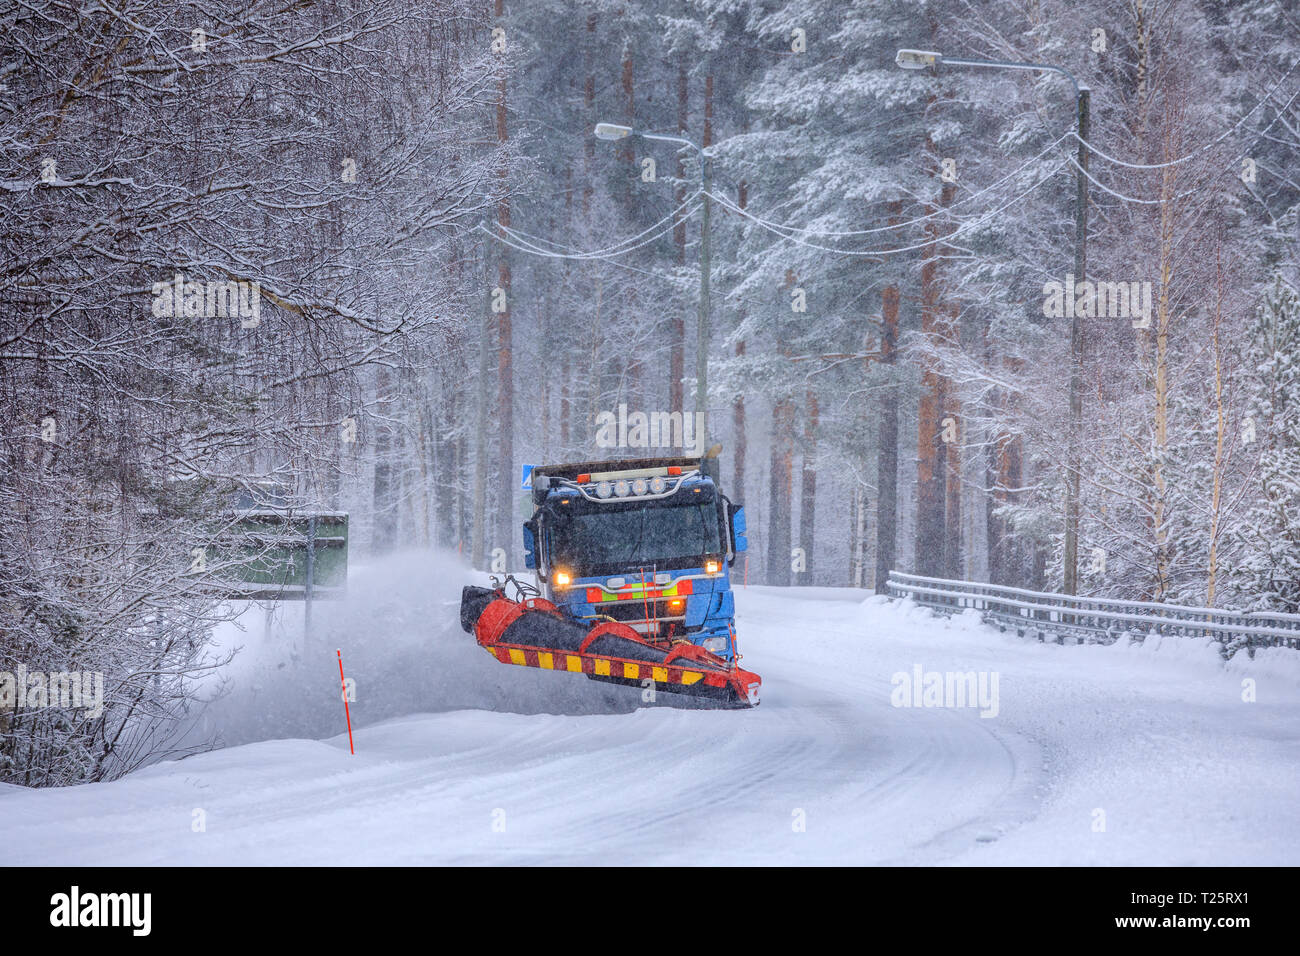 Snowplow removing snow from a snow-covered icy road - Stock Image